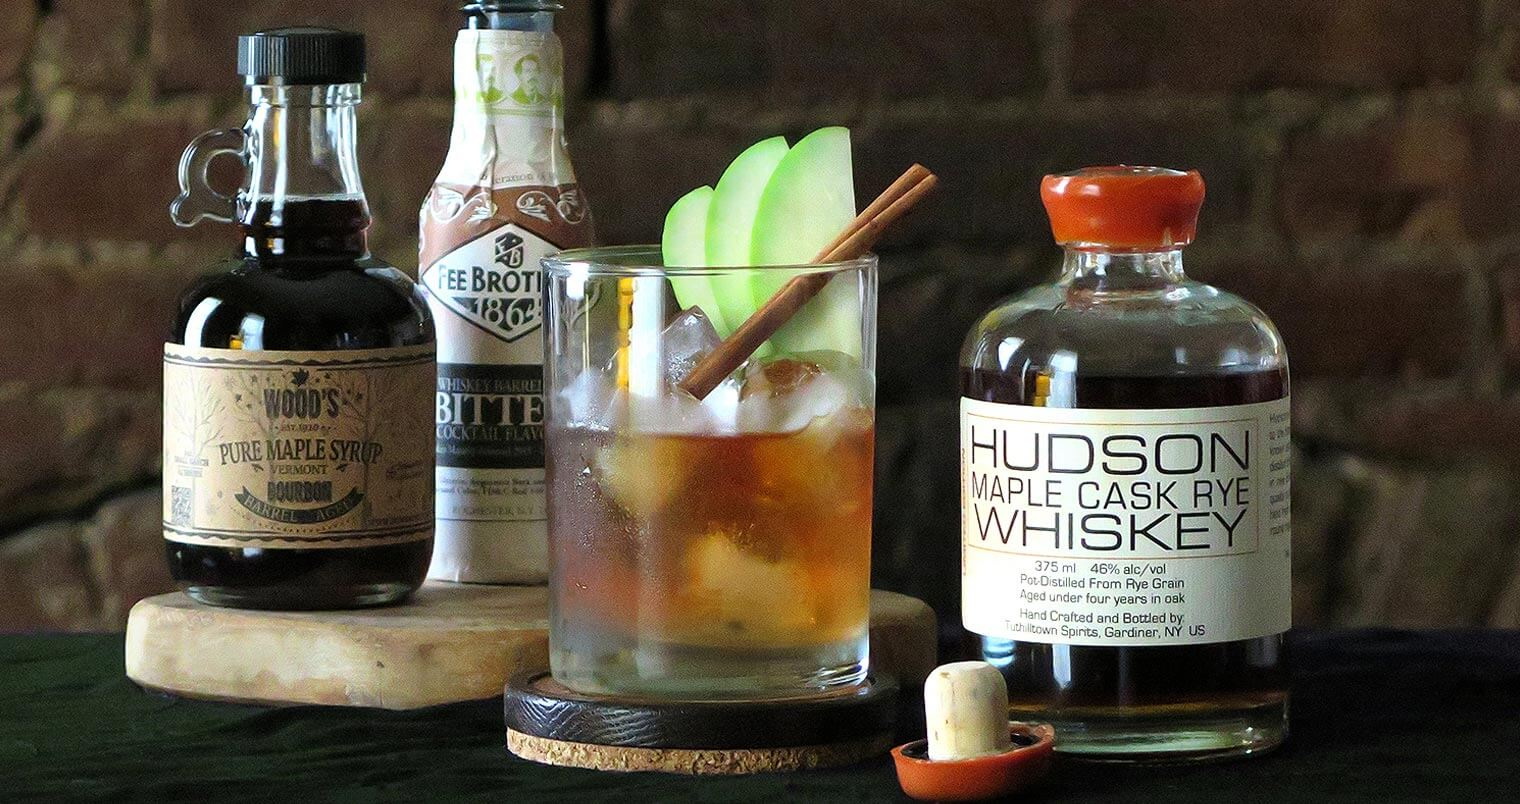 Hudson Whiskey Maple Cask Rye Cocktails, featured image